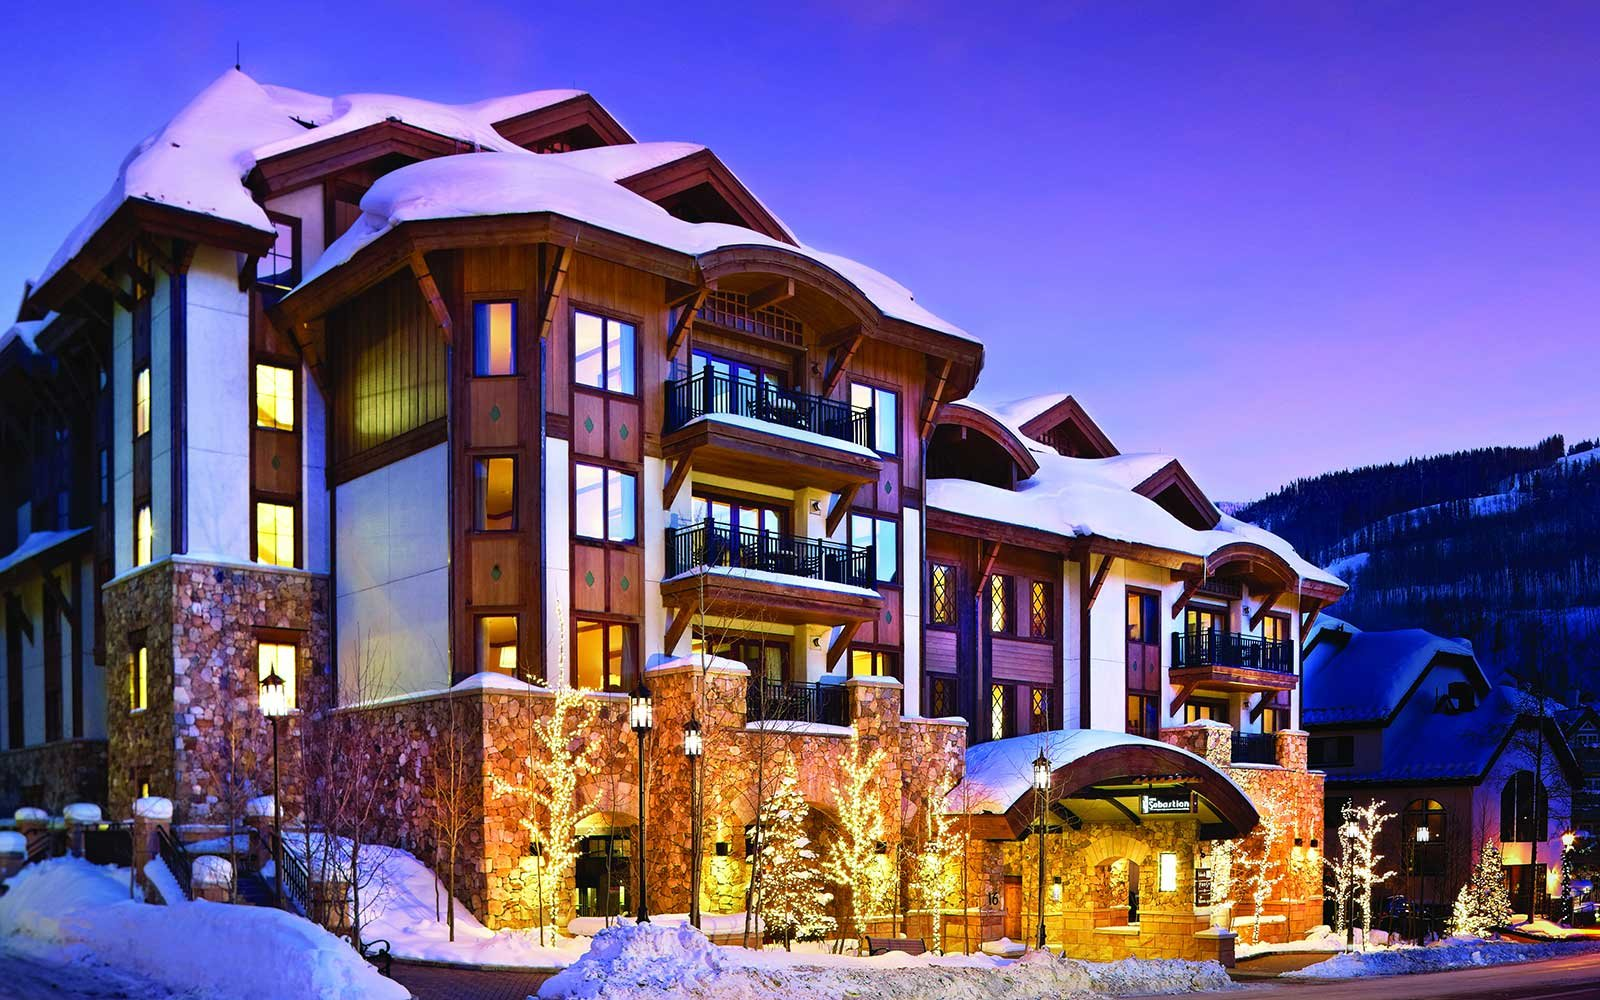 Best Kitchen Gallery: The 2017 World's Best Resort Hotels In The West Travel Leisure of Canyons Resort Hotels  on rachelxblog.com